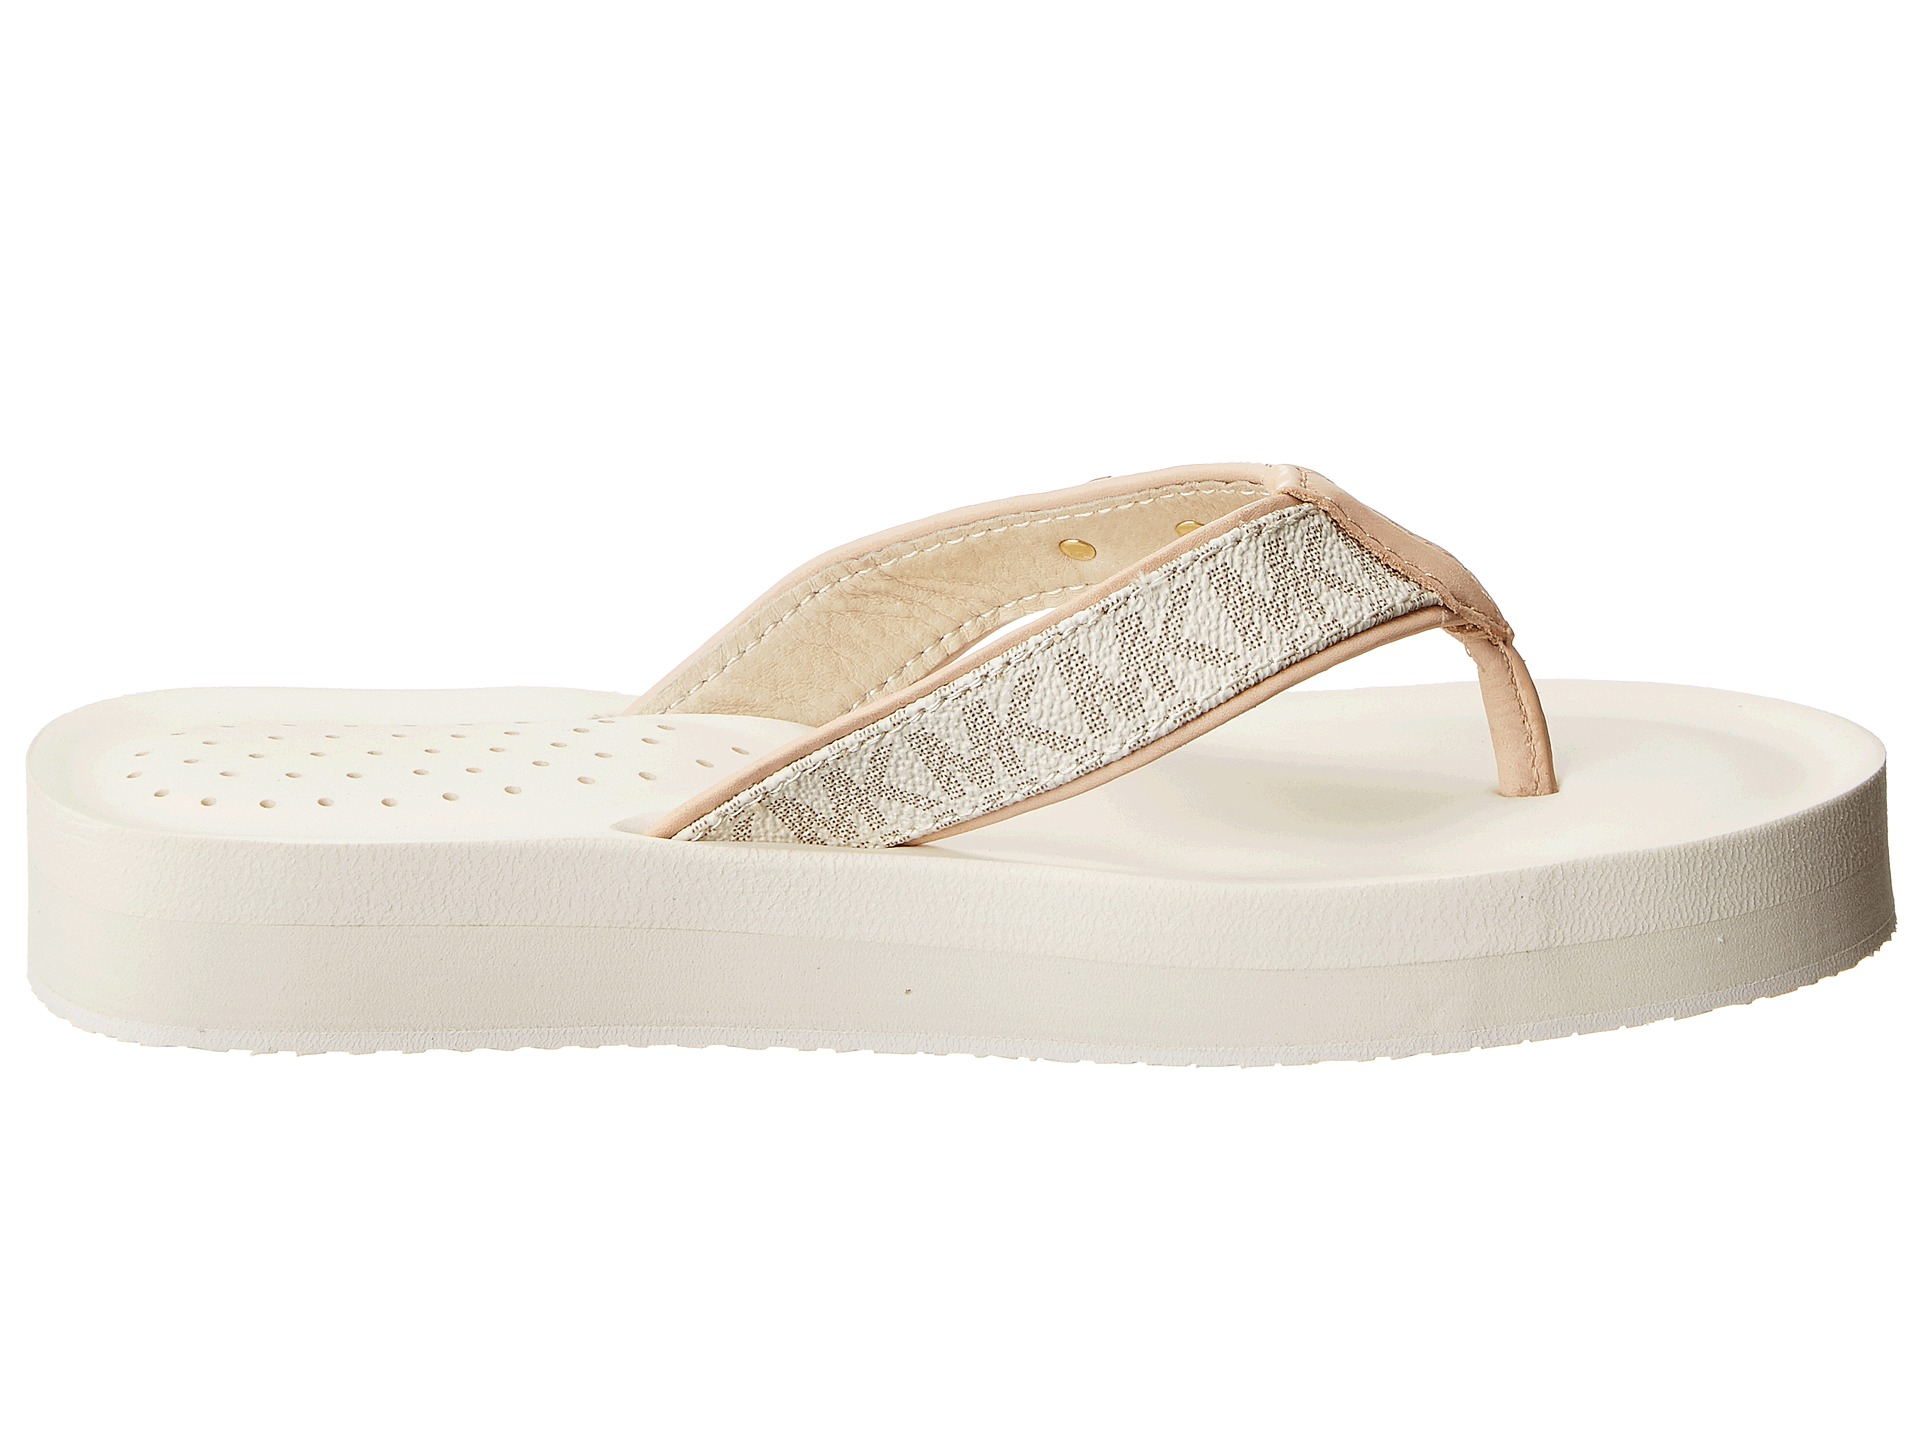 46bf232c3 Lyst - MICHAEL Michael Kors Gage Flip Flop in White